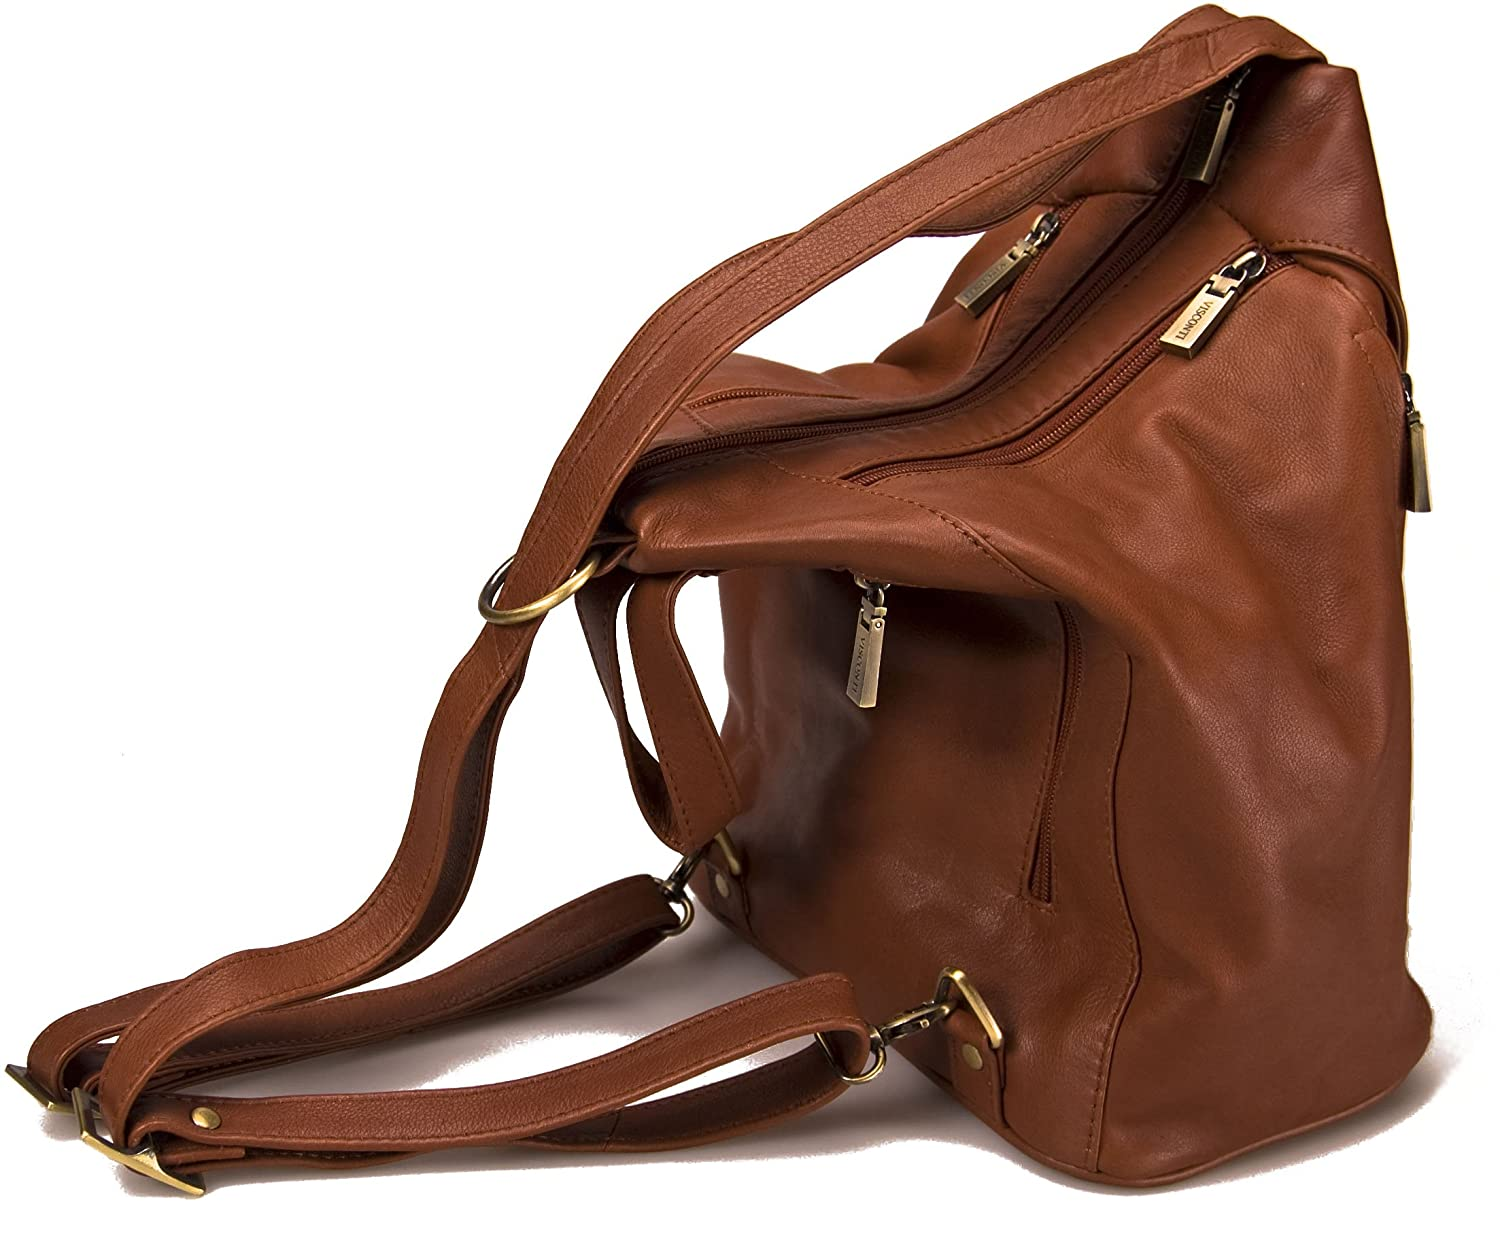 7640c4da608e Visconti Leather Backpack Handbags for Women - Rucksack for Travel DANII    18357  Brown   Amazon.co.uk  Shoes   Bags